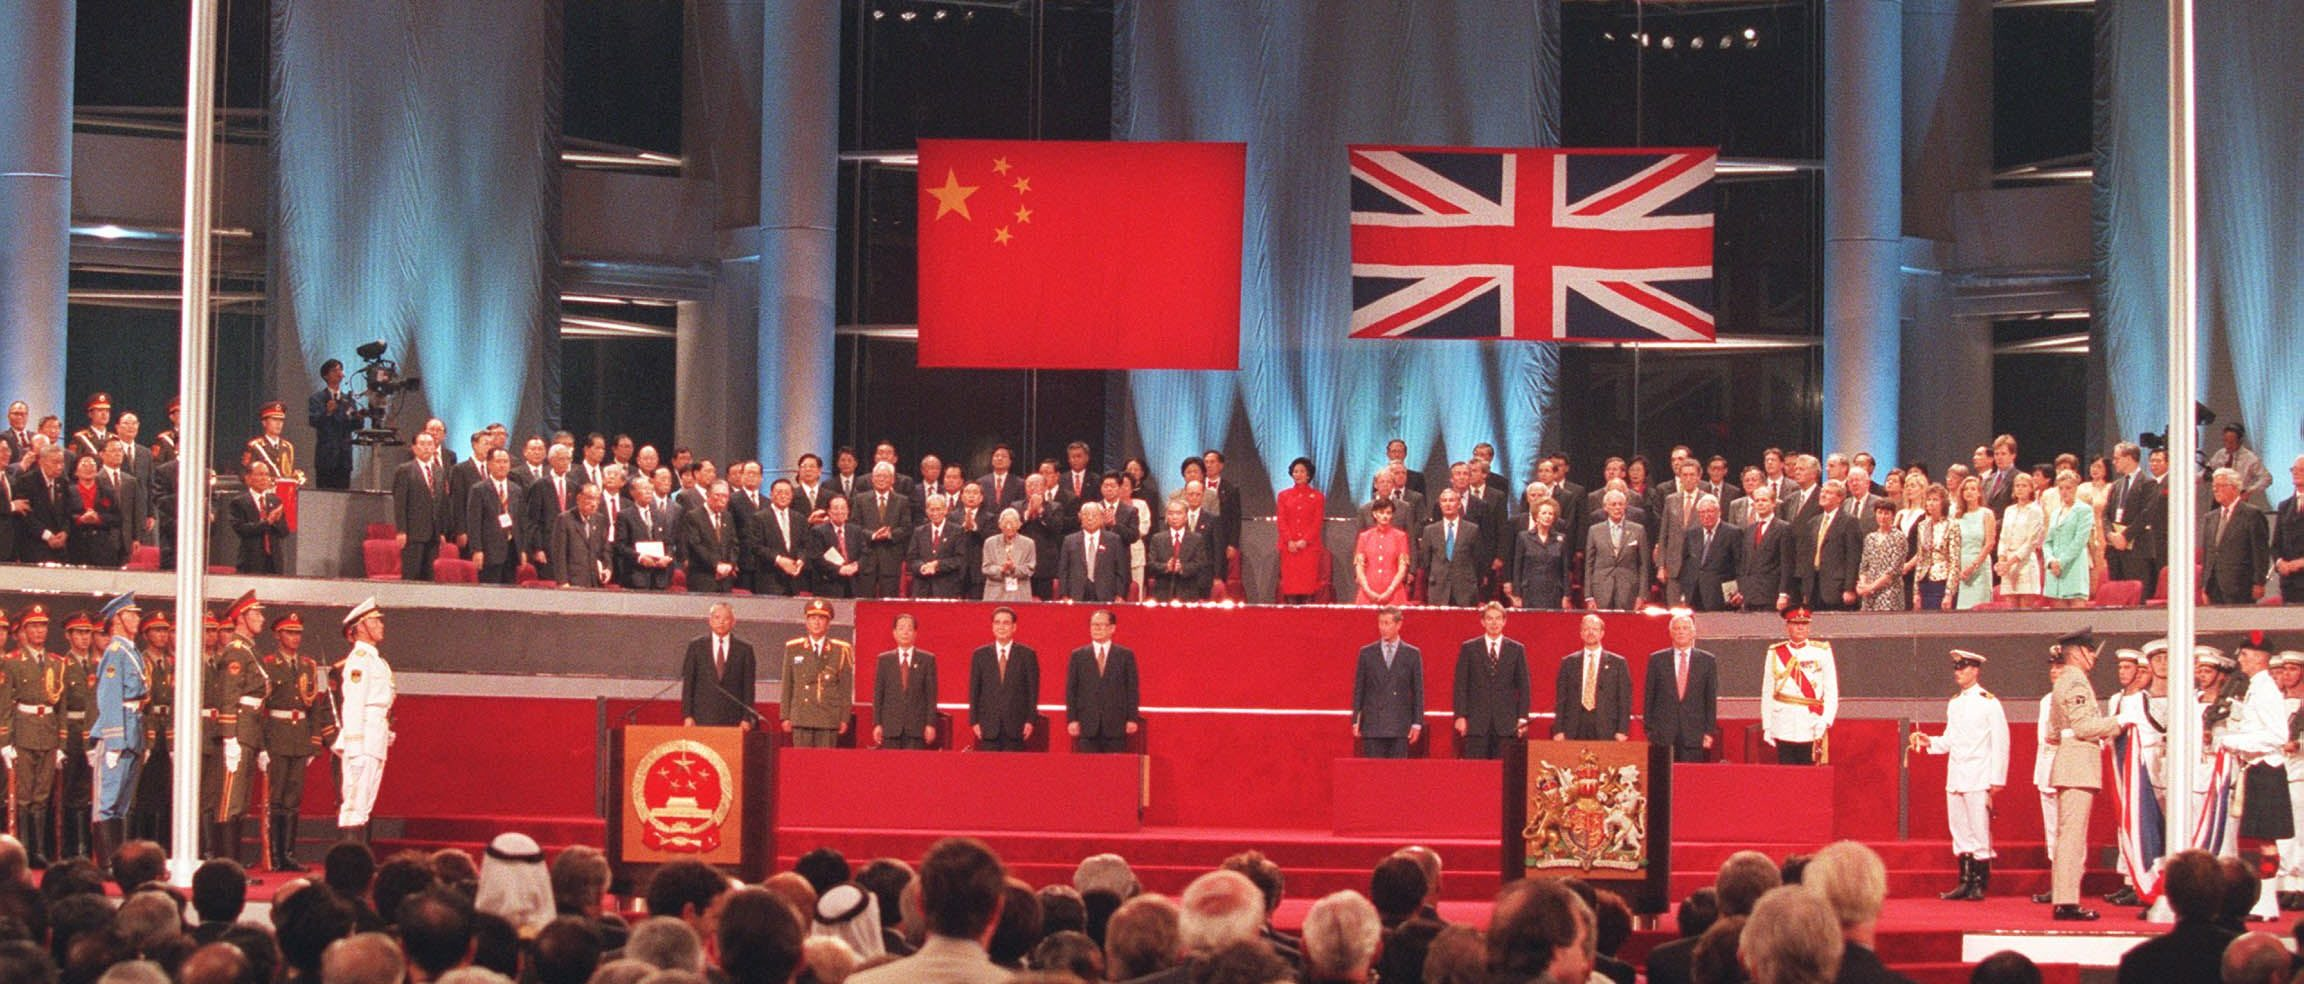 A general view of the handover ceremony 01 July showing the Chinese flag (L) flying after the Union Jack was lowered. AFP PHOTO/ POOL/Kimimasa MAYAMA (Photo credit should read KIMIMASA MAYAMA/AFP via Getty Images)